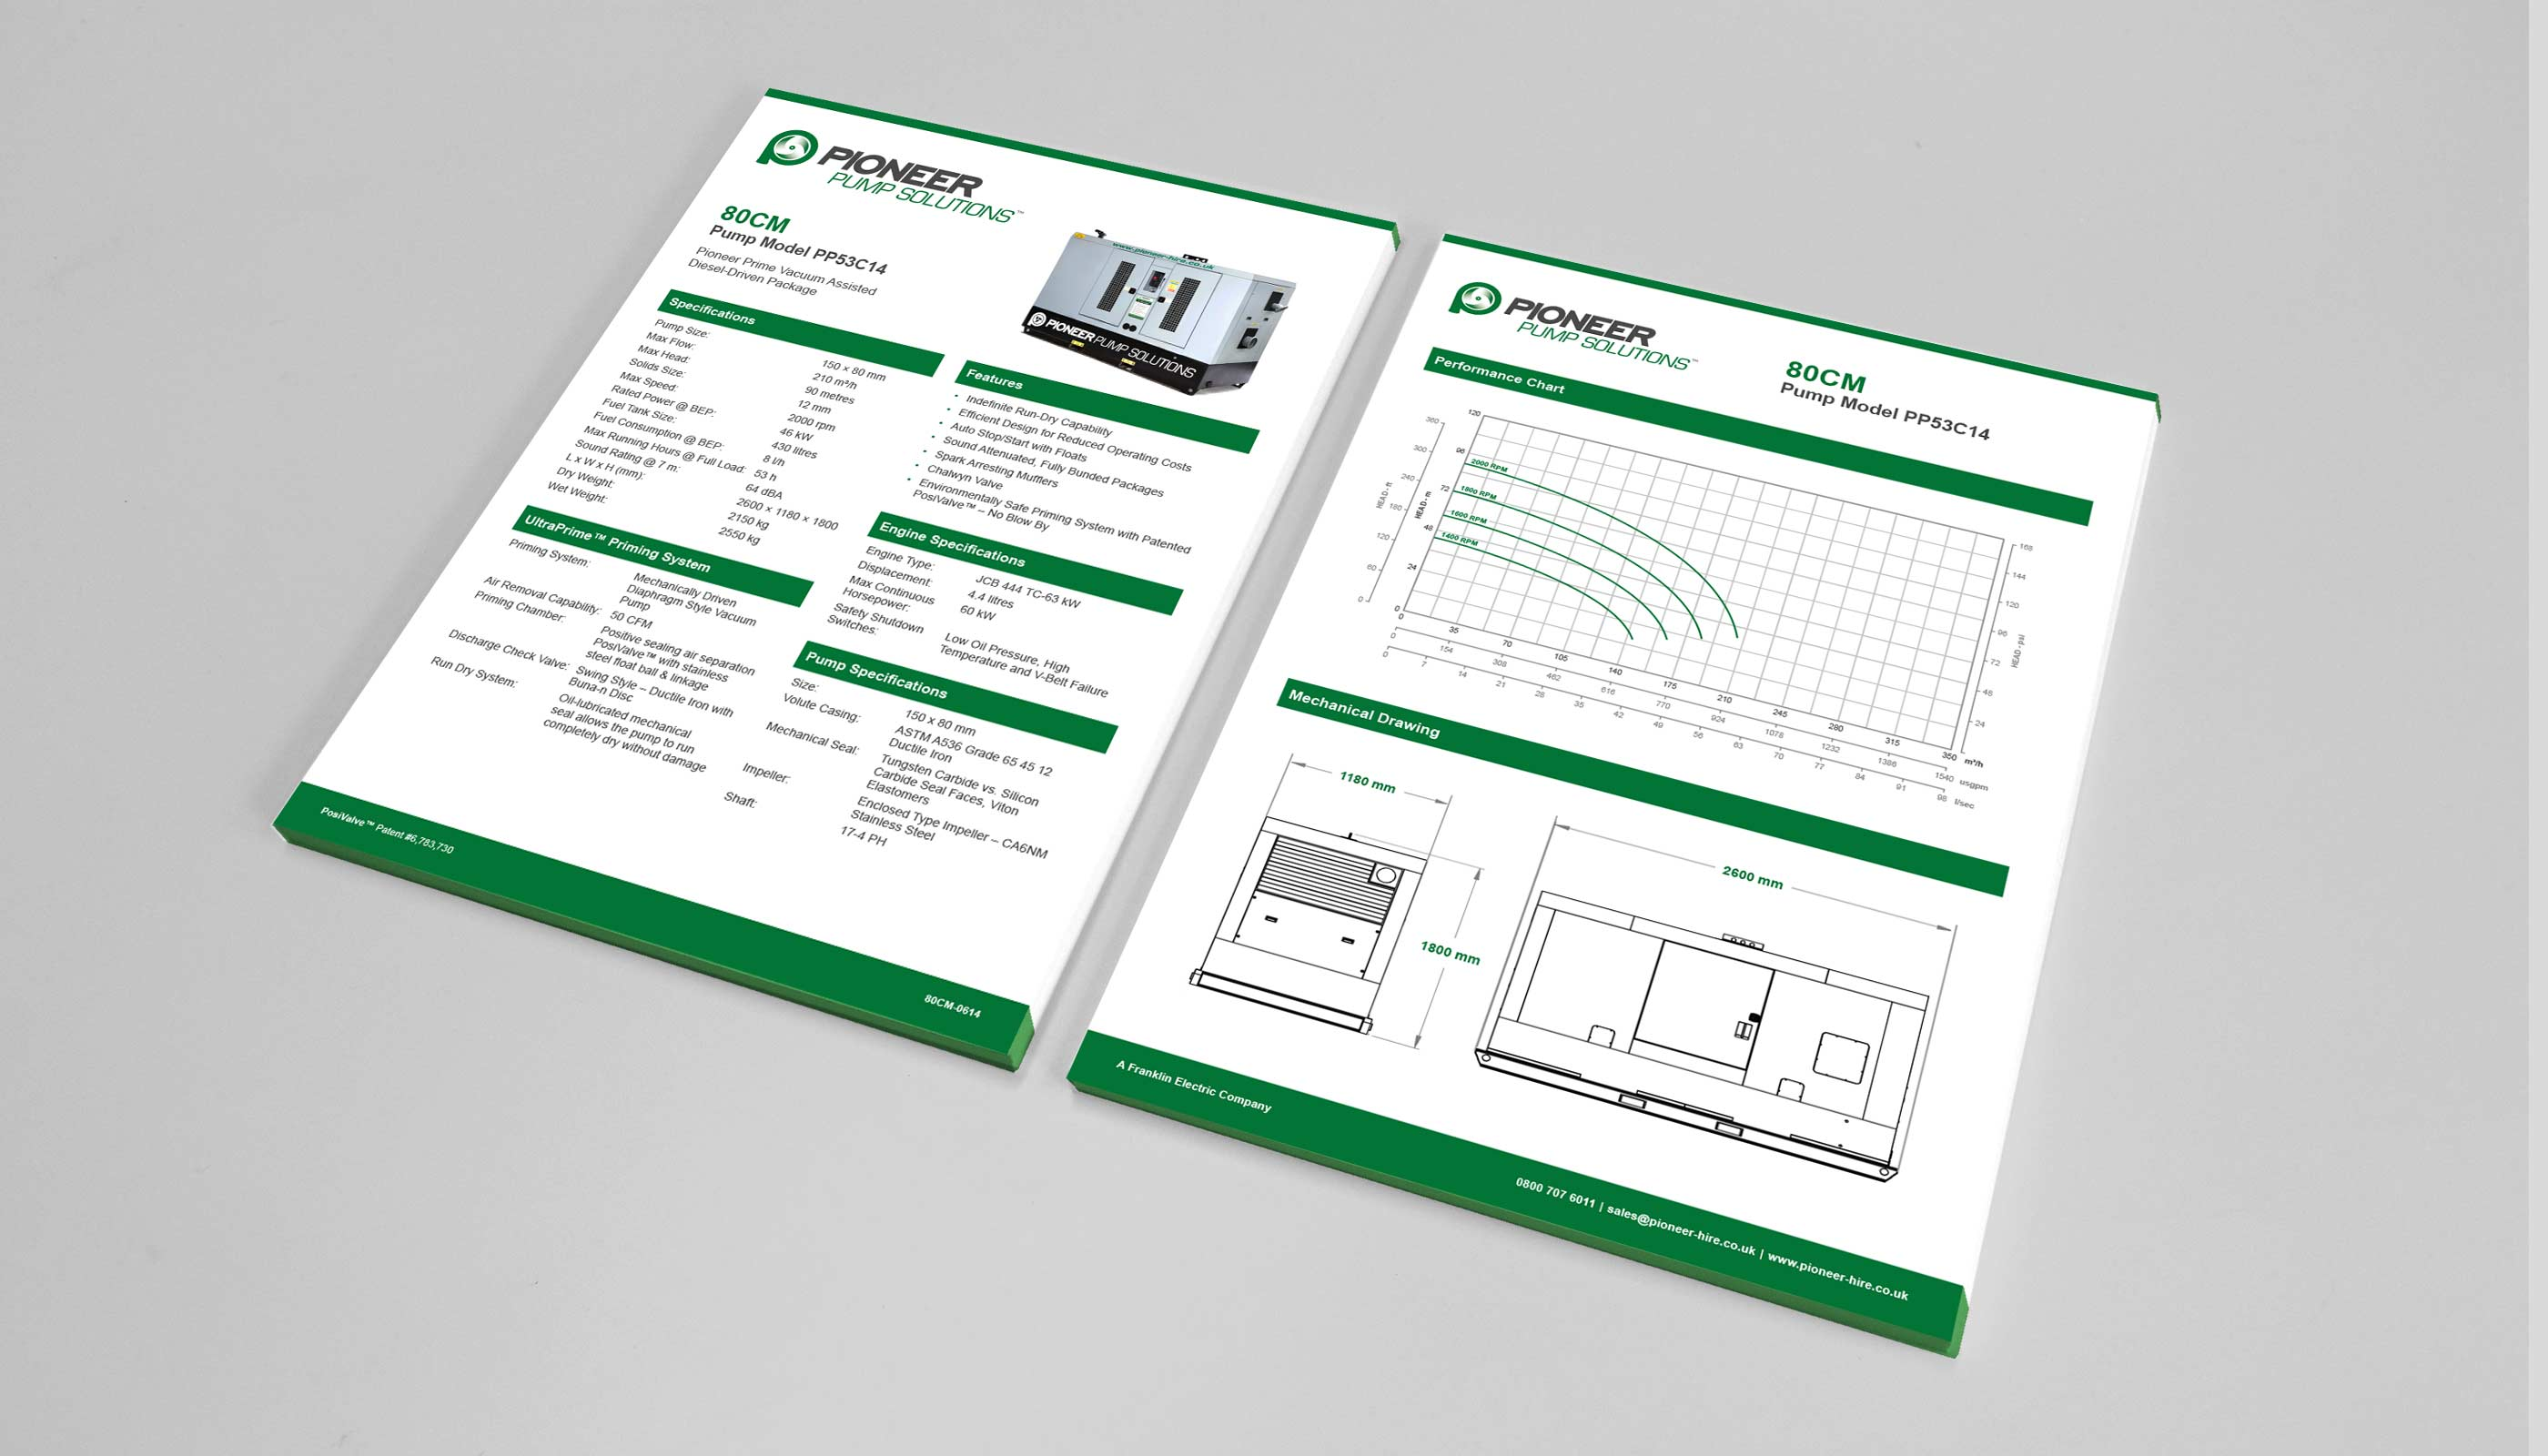 Technical product data sheets design and print for Pioneer Pump in Suffolk, UK.